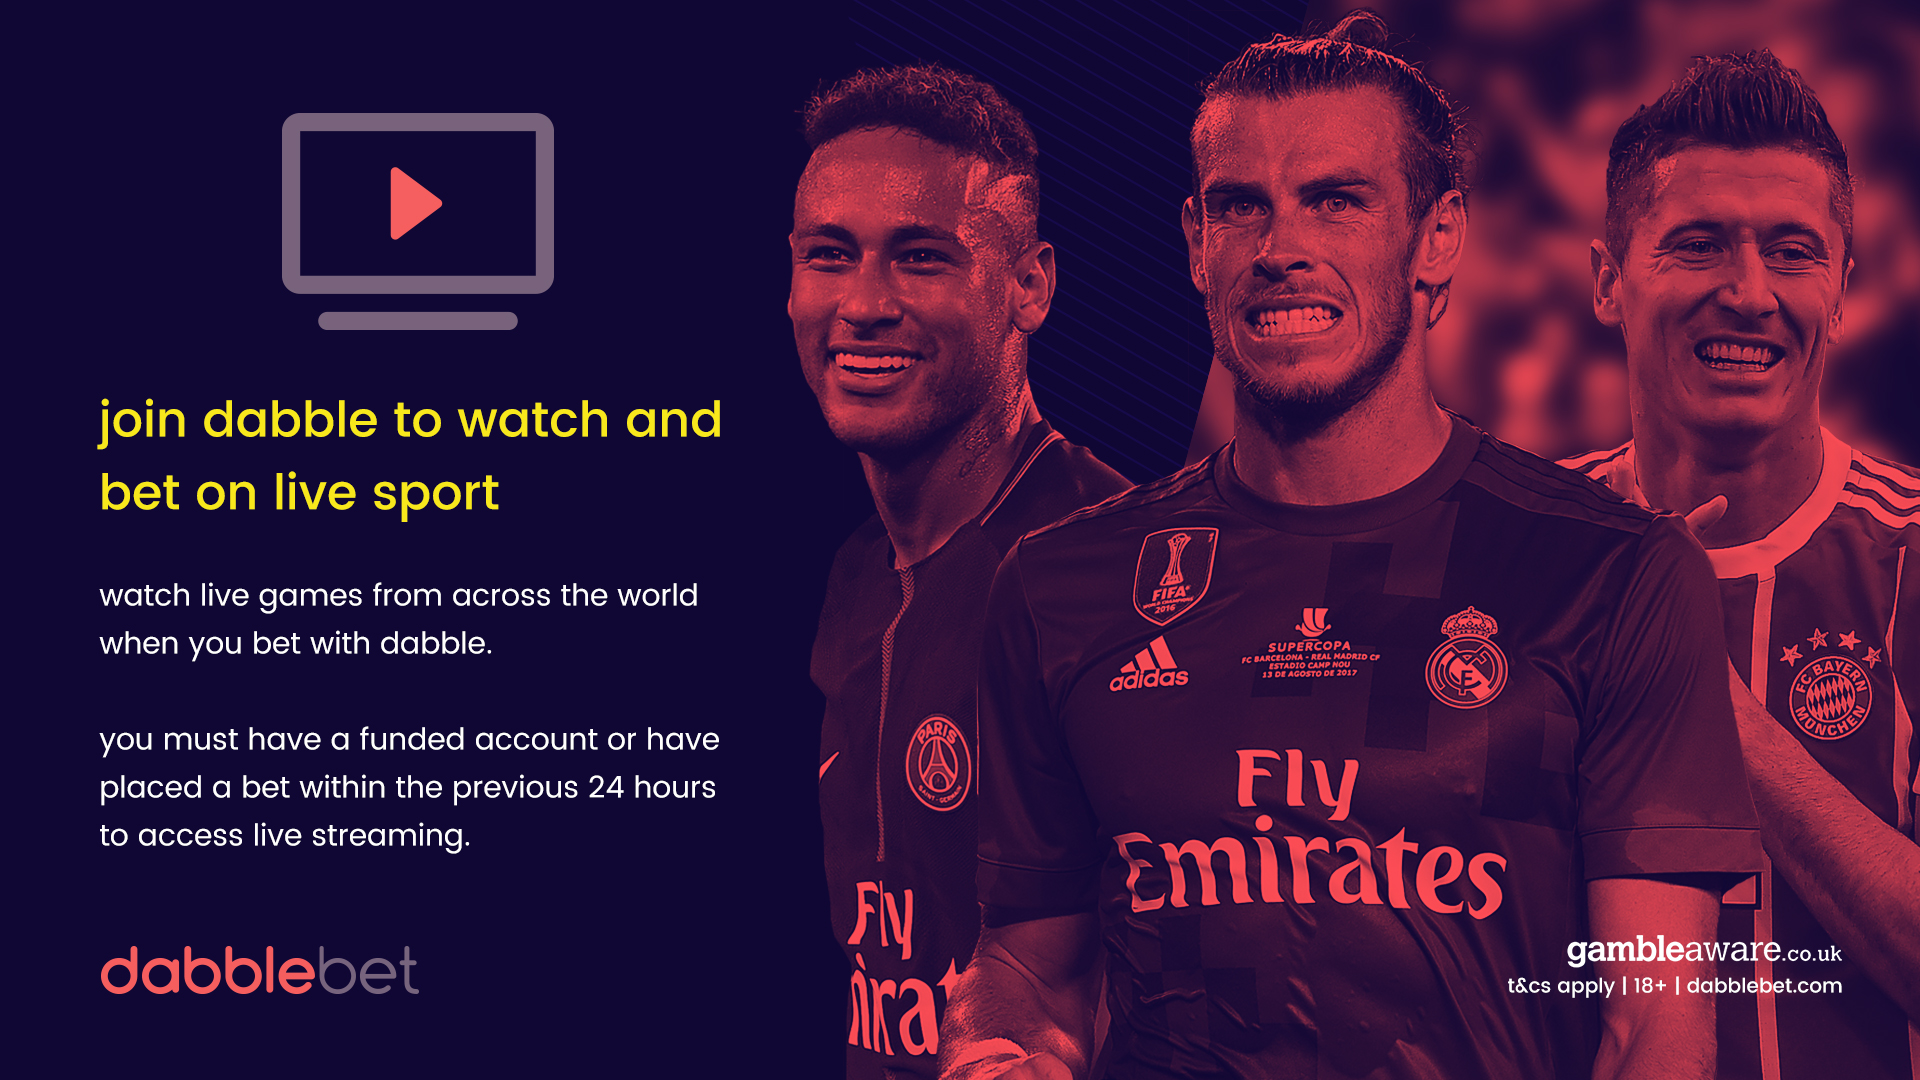 GFX WATCH AND BET DABBLE PROMO